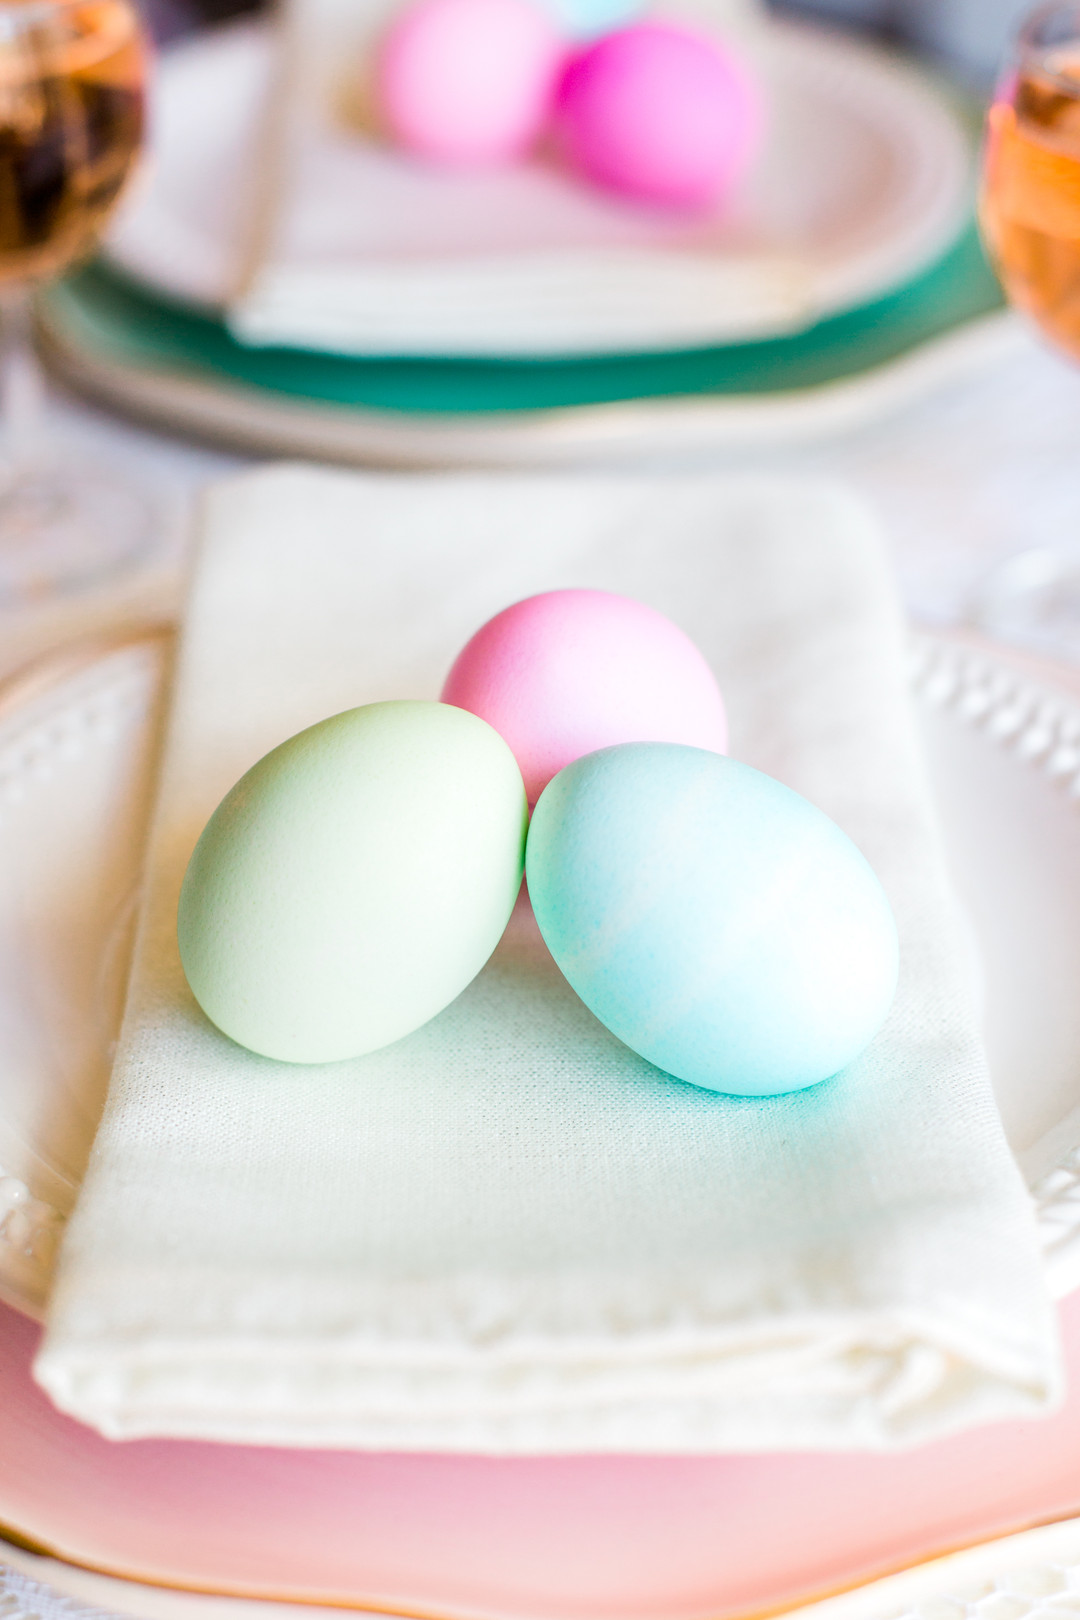 Staal_KristinaStaalPhotography_KristinaStaalPhotographyEasterTablescape201614_big Easy Entertaining: Easter Brunch Inspiration for Two